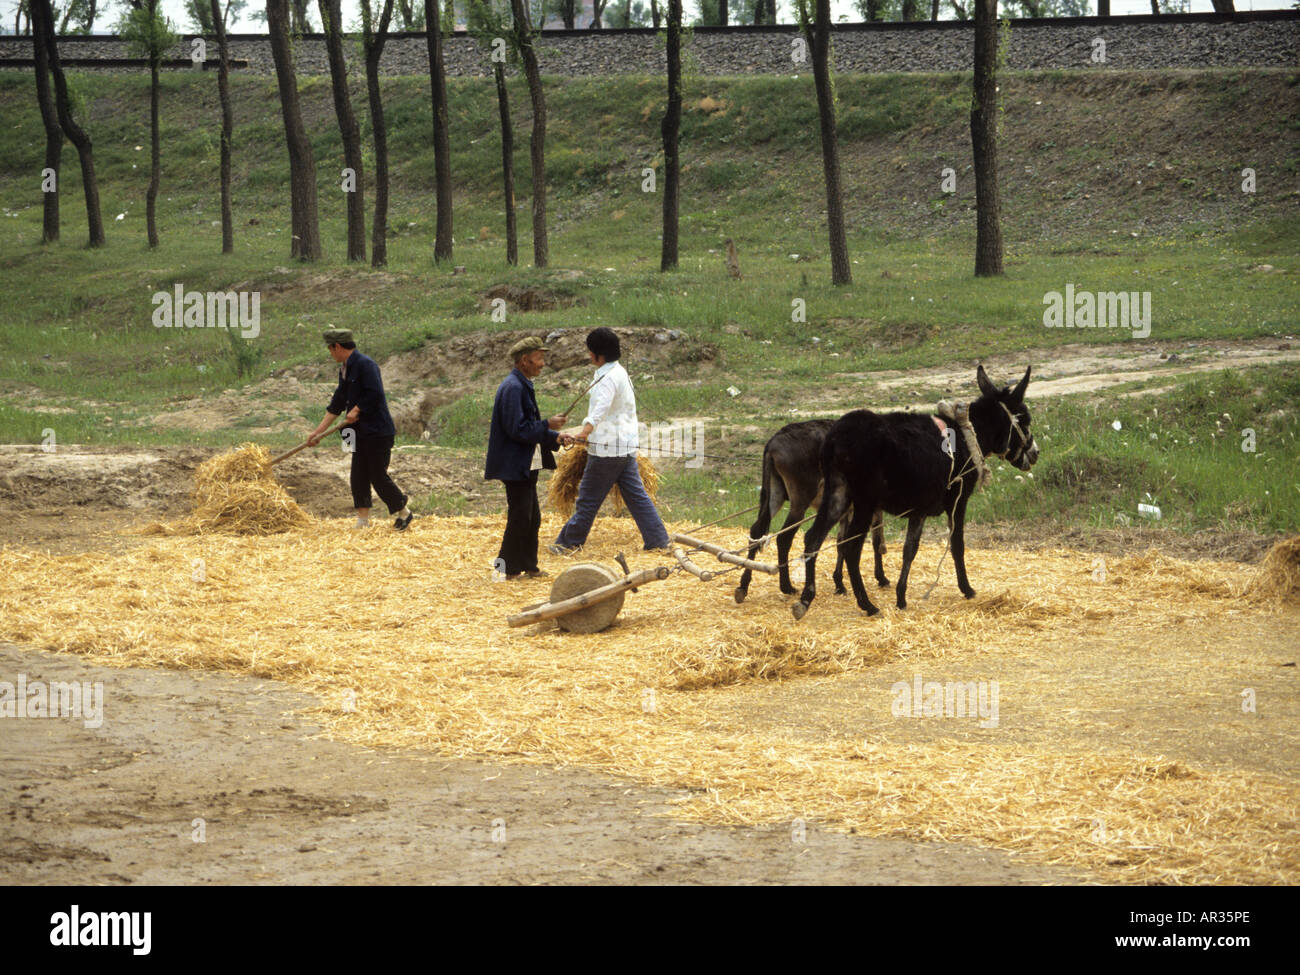 Using a donkey to pull a heavy stone to grind corn in rural China - Stock Image